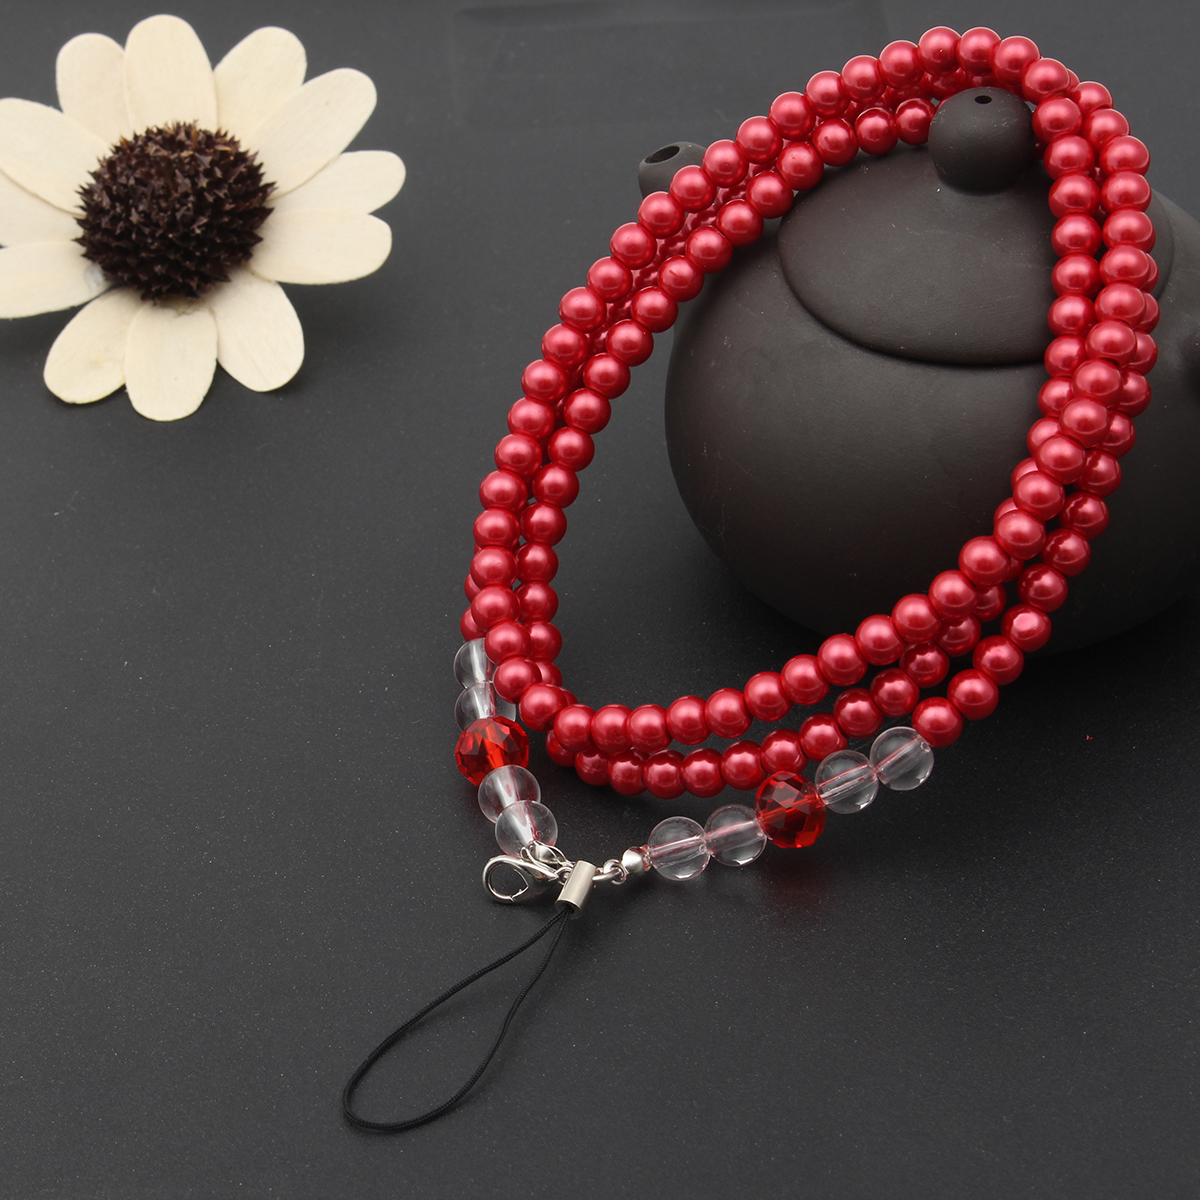 Universal Neck Handmade Lanyard Pearl Metal Buckle Chain Phone Strap for Cell Phone